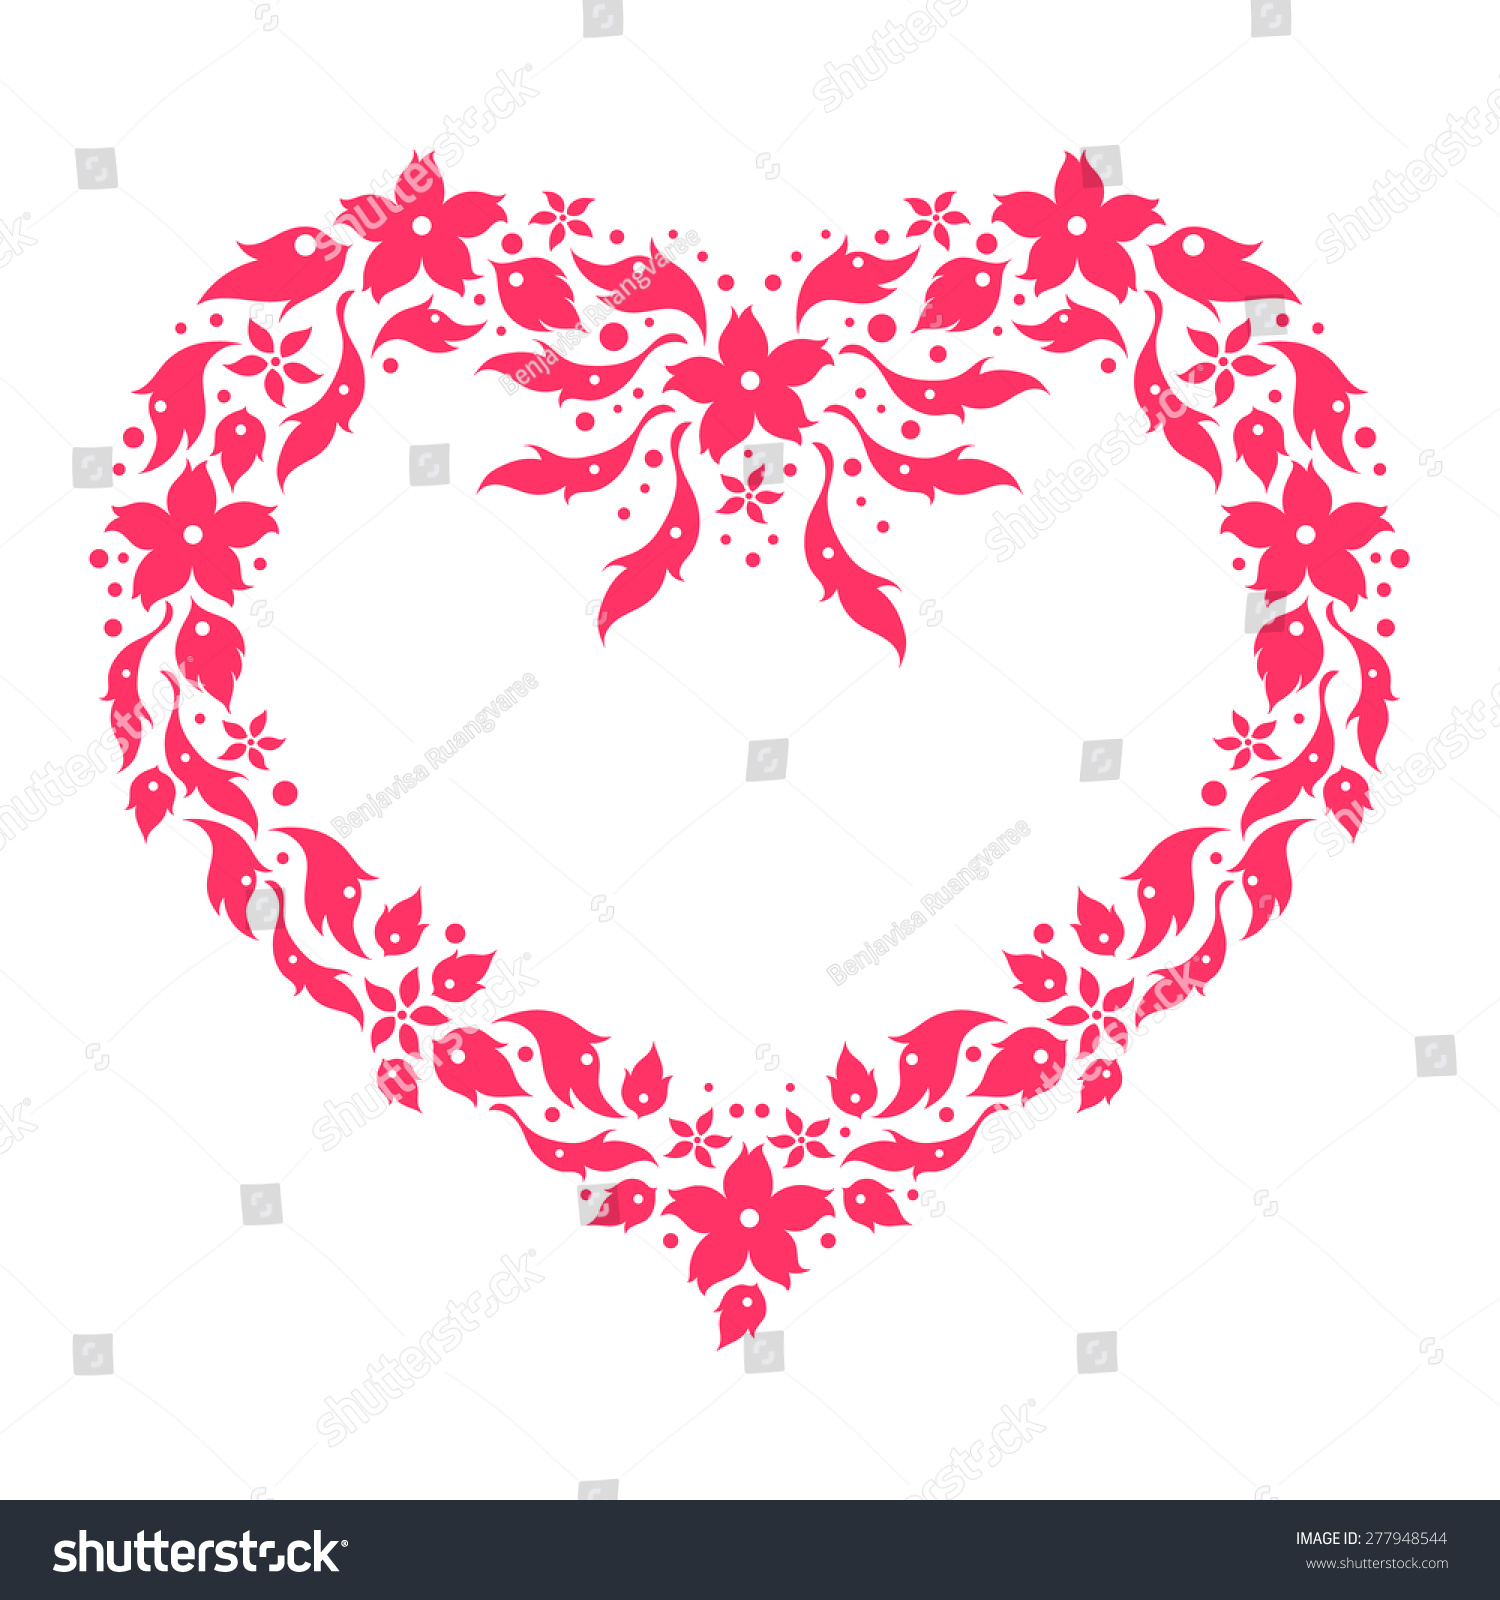 Heart Floral Pattern Love Flower Frame Stock Vector (Royalty Free ...